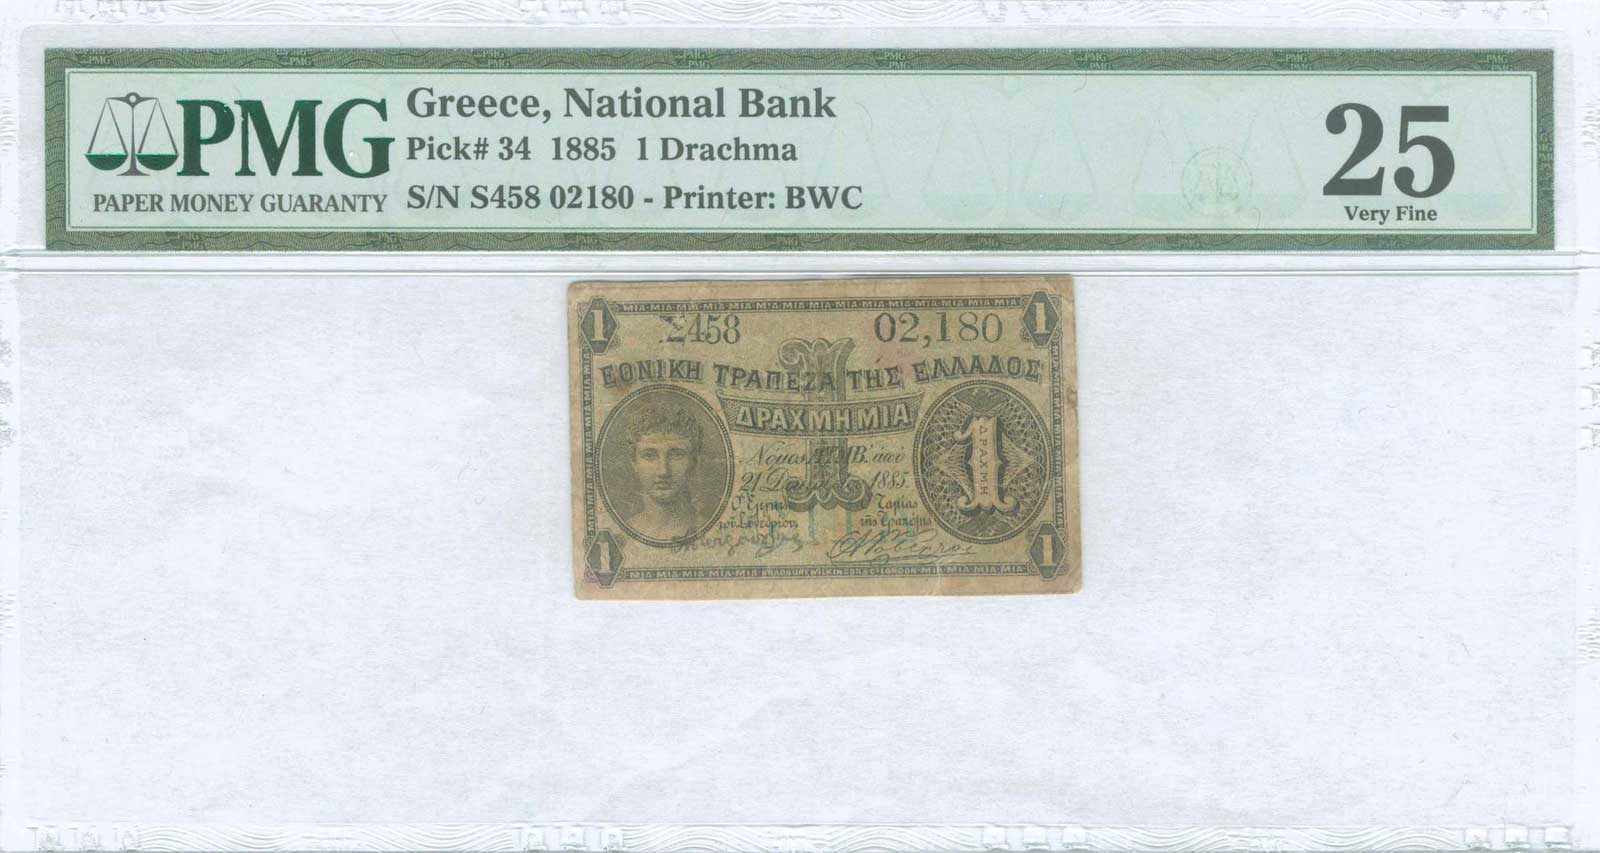 Lot 9278 - GREECE-  PAPER MONEY - BANKNOTES National Bank of Greece -  A. Karamitsos Public & LIVE Bid Auction 606 Coins, Medals & Banknotes